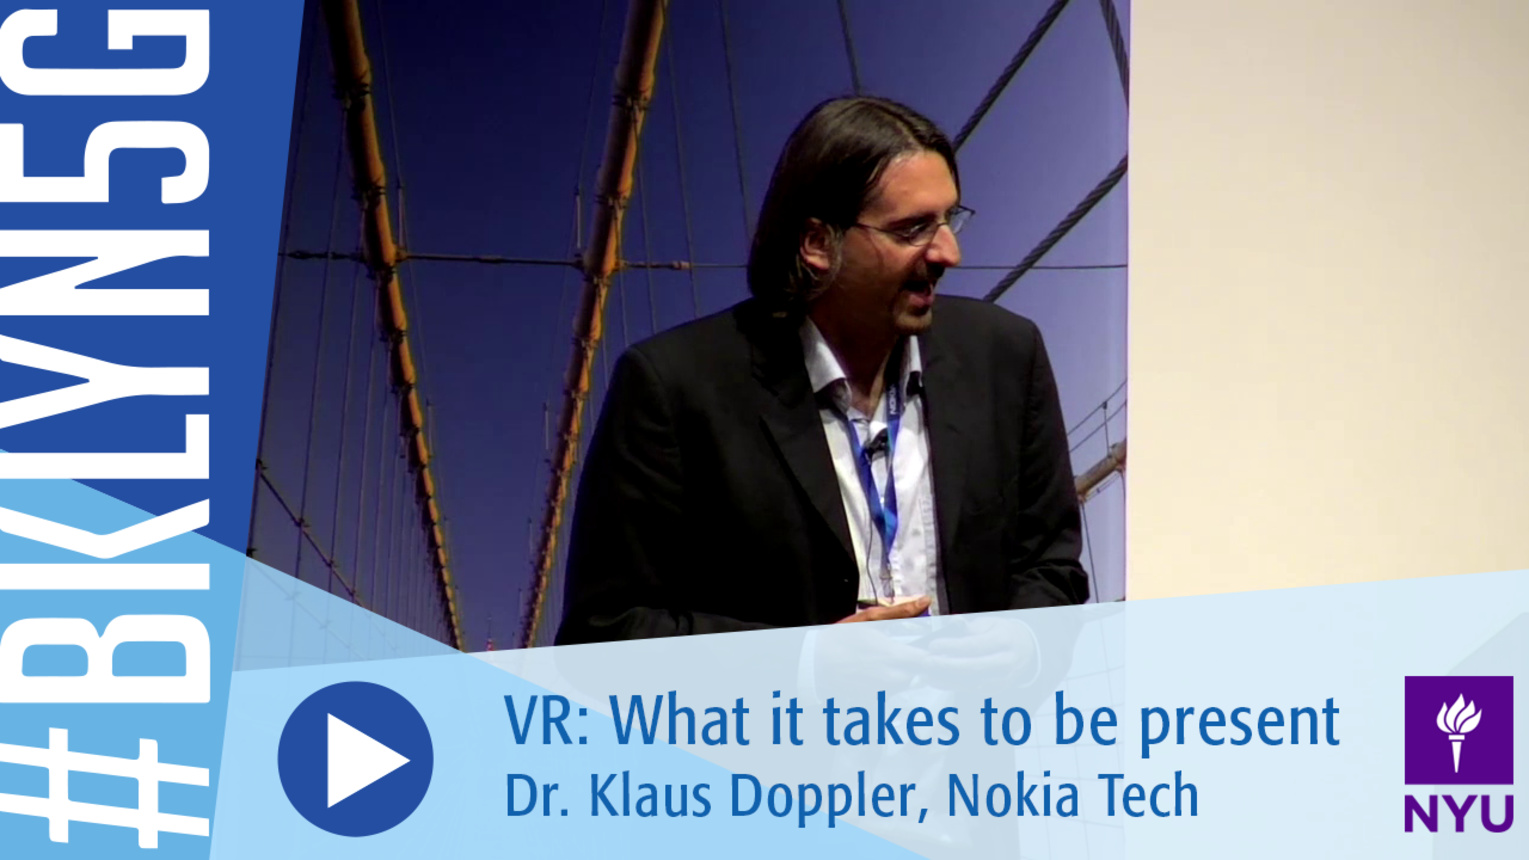 Brooklyn 5G 2016: Dr. Klaus Doppler on Virtual Reality - what it takes to be present